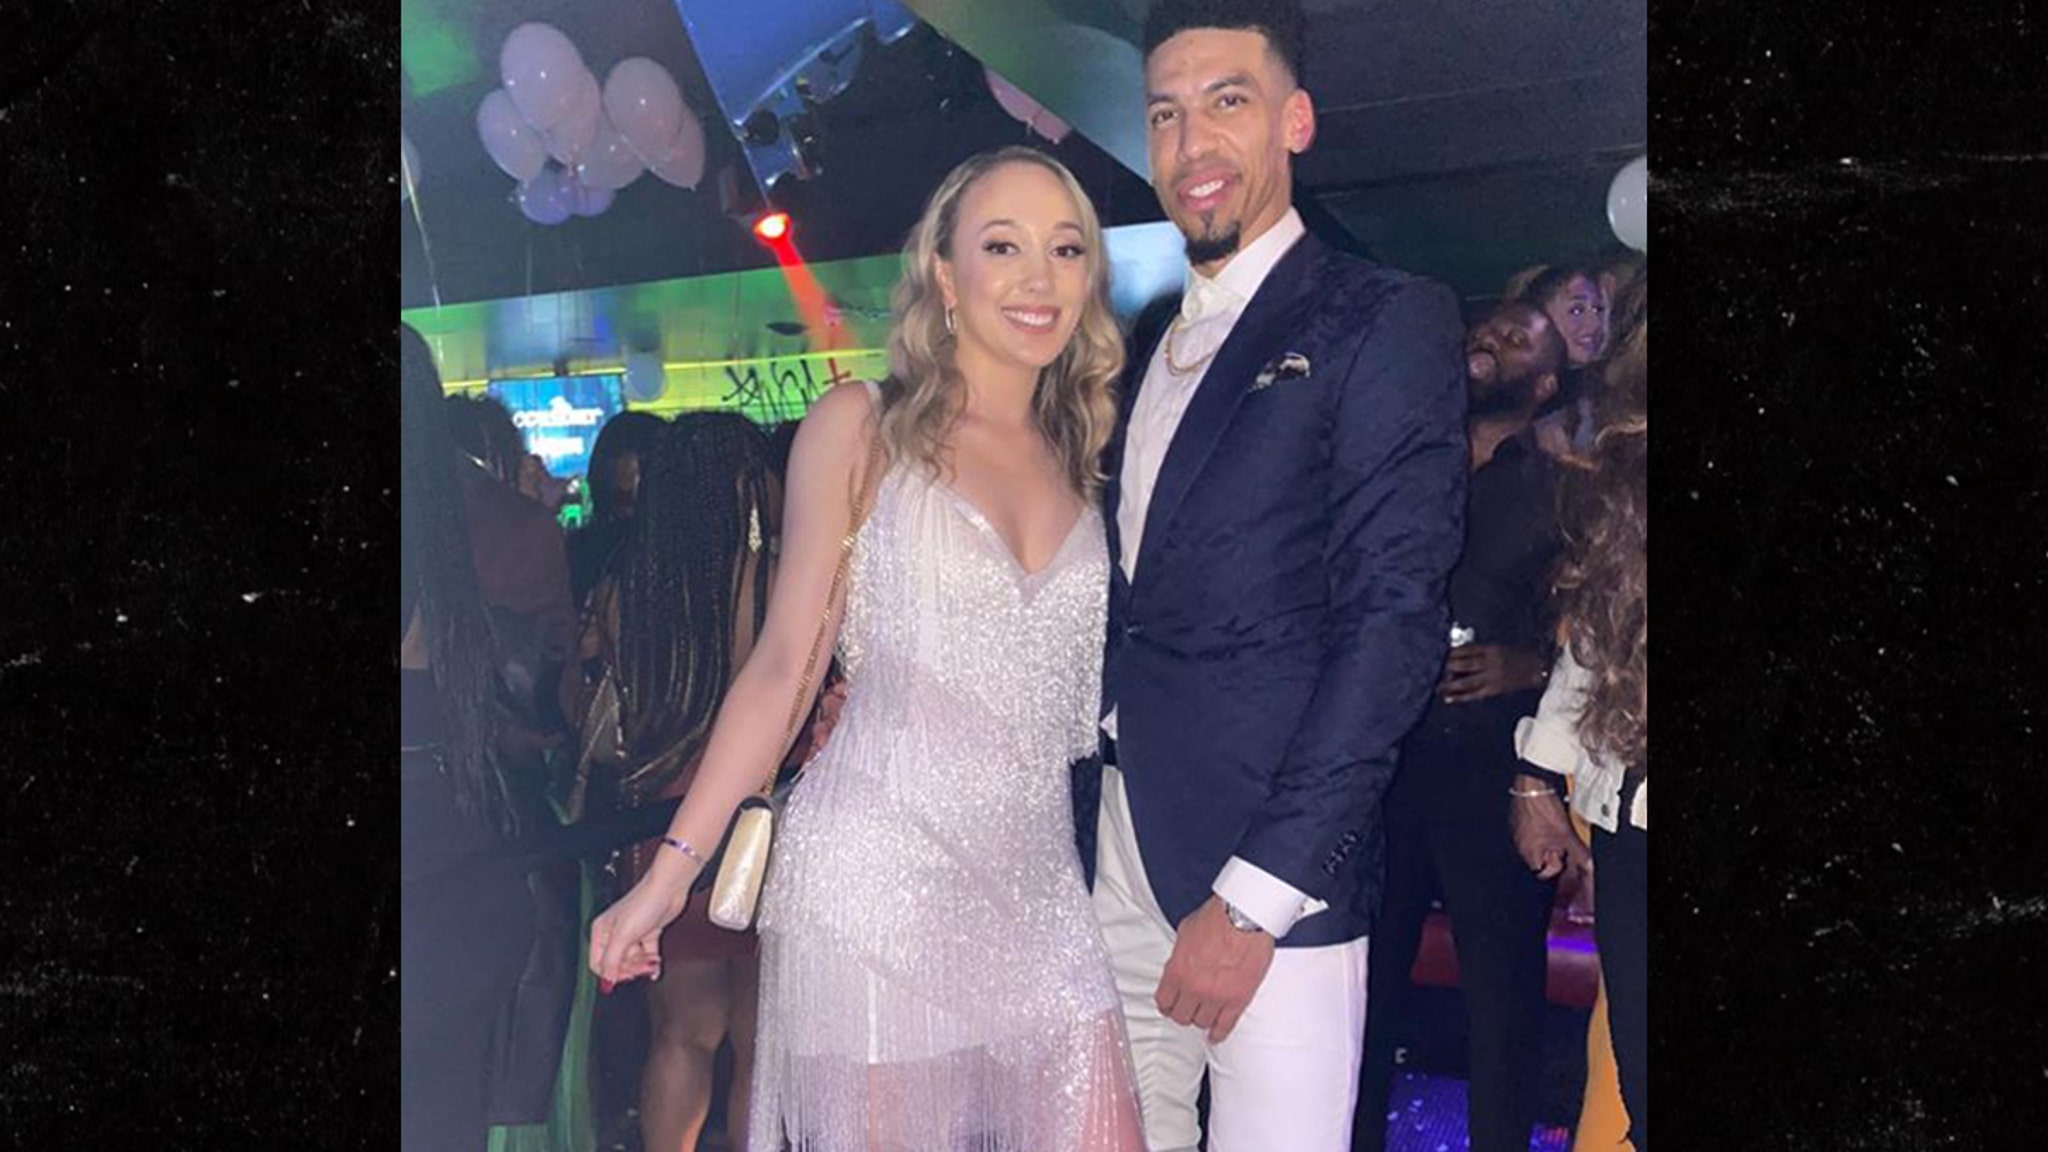 NBA's Danny Green Proposes To GF, Waited Until I Could Afford Perfect Ring!